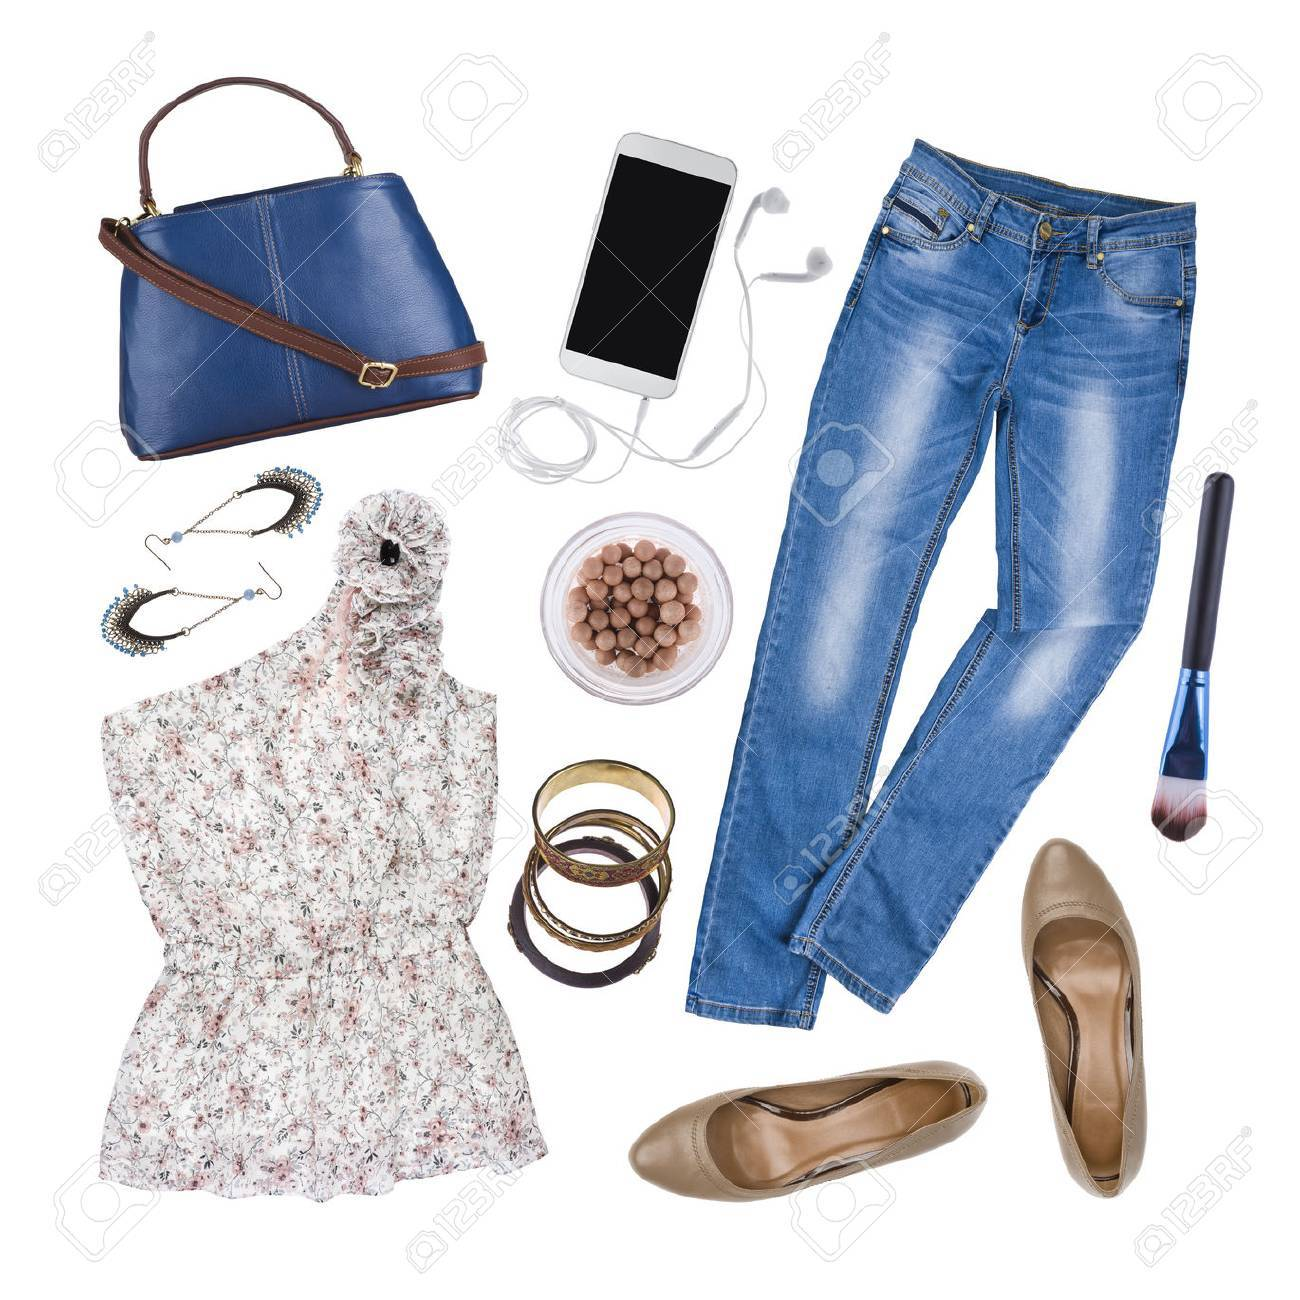 3e299cc2308 Collage of woman summer clothes and accessories isolated on white Stock  Photo - 53799557